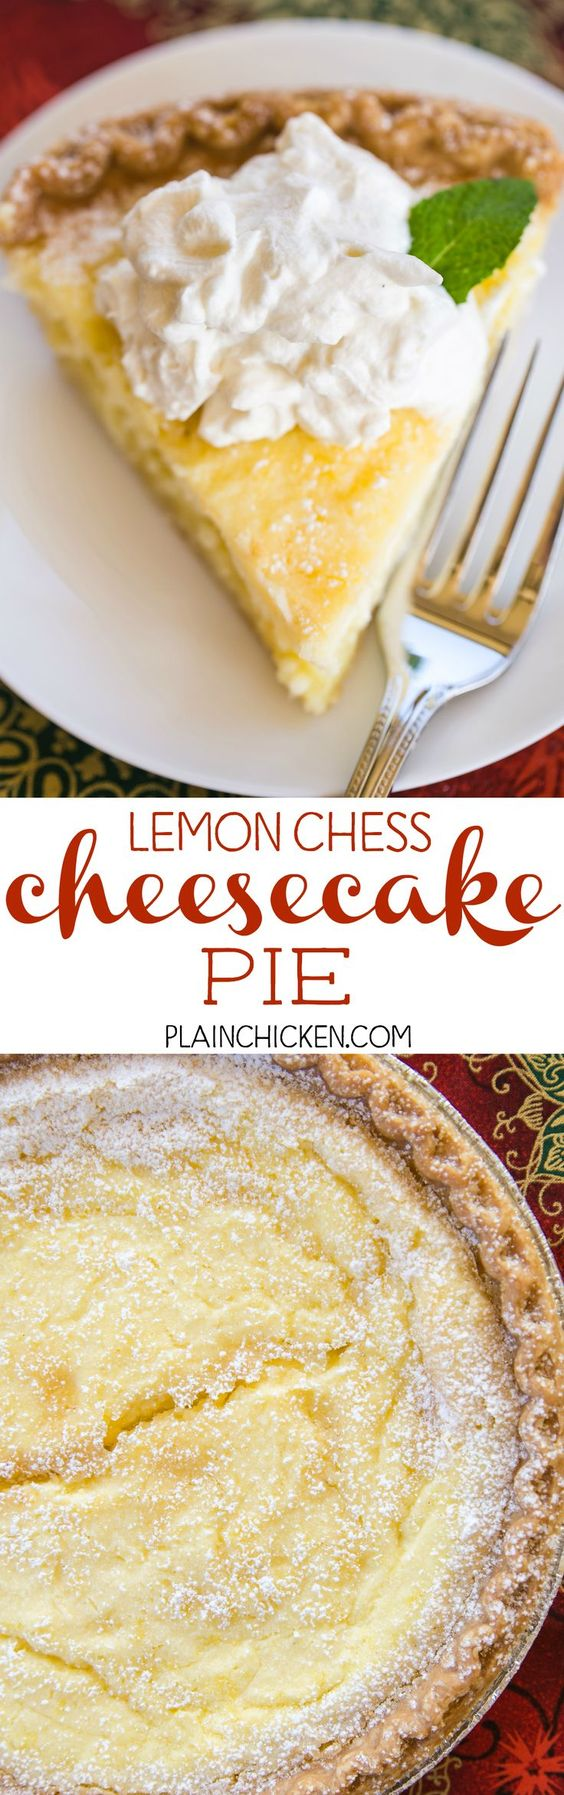 Lemon Chess Cheesecake Pie Recipe via Plain Chicken - two favorites in one dessert! Quick cheesecake layer on the bottom and a delicious homemade lemon chess pie on top! The BEST Easy Lemon Desserts and Treats Recipes - Perfect For Easter, Mother's Day Brunch, Bridal or Baby Showers and Pretty Spring and Summer Holiday Party Refreshments!